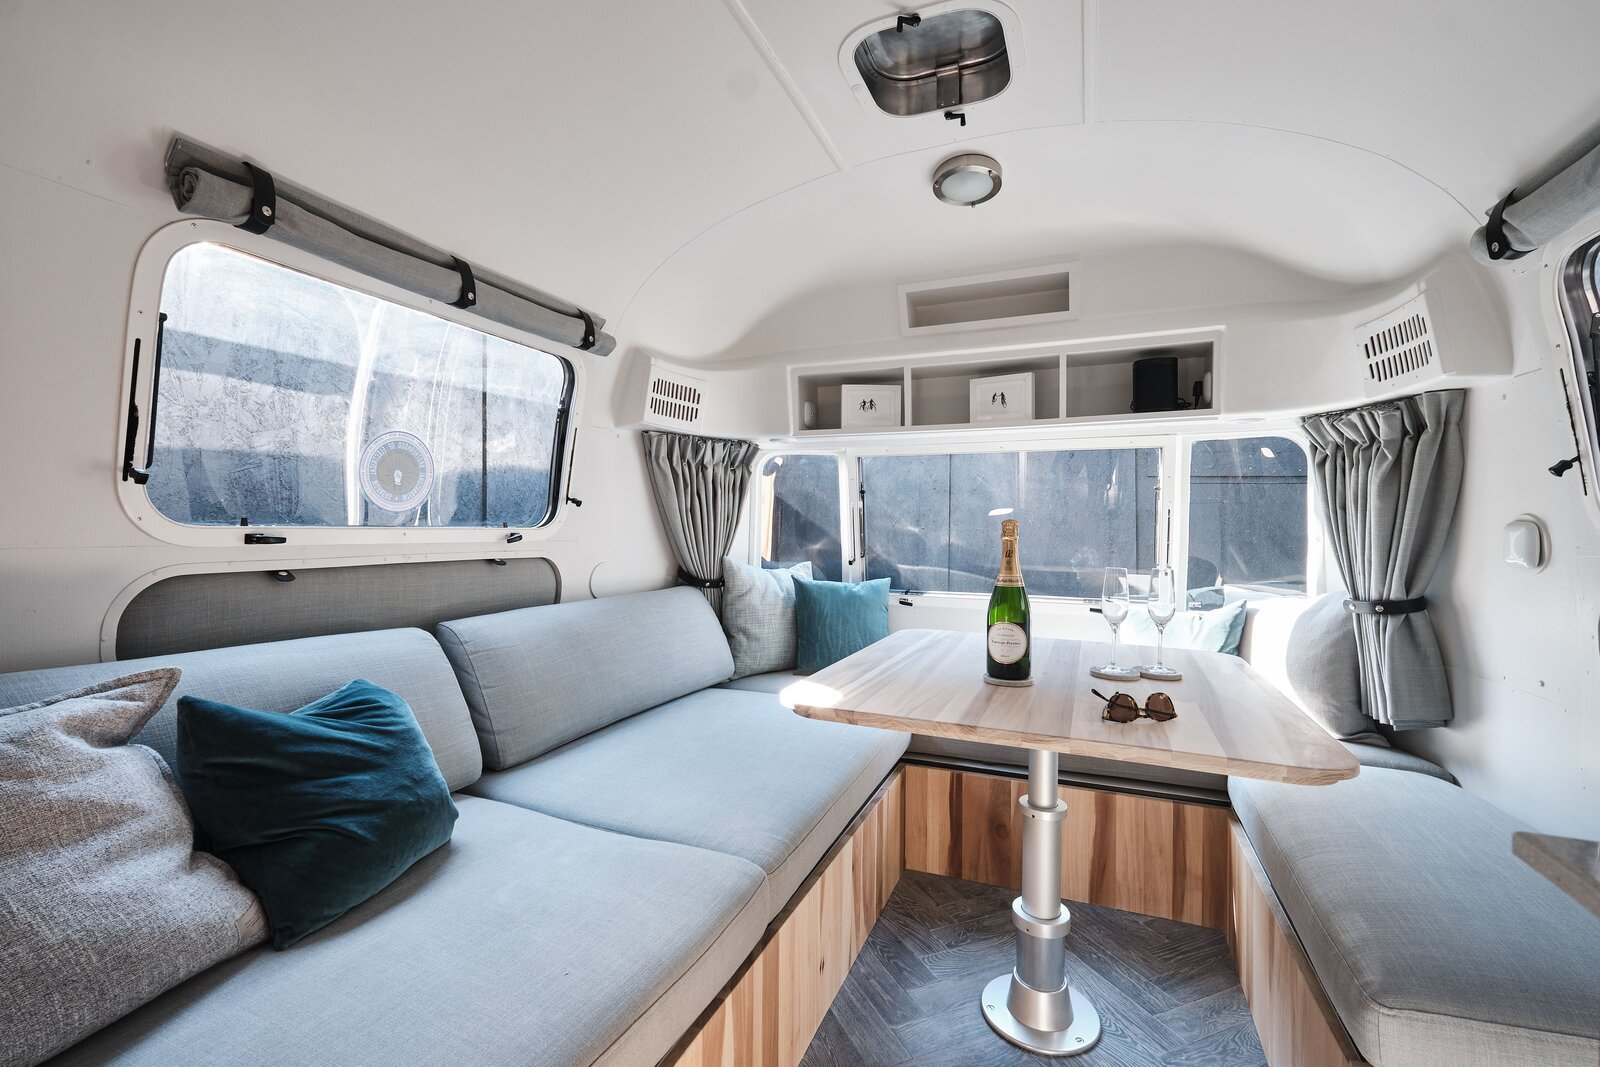 Scoop Up This Revamped 1974 Airstream for $235K in London